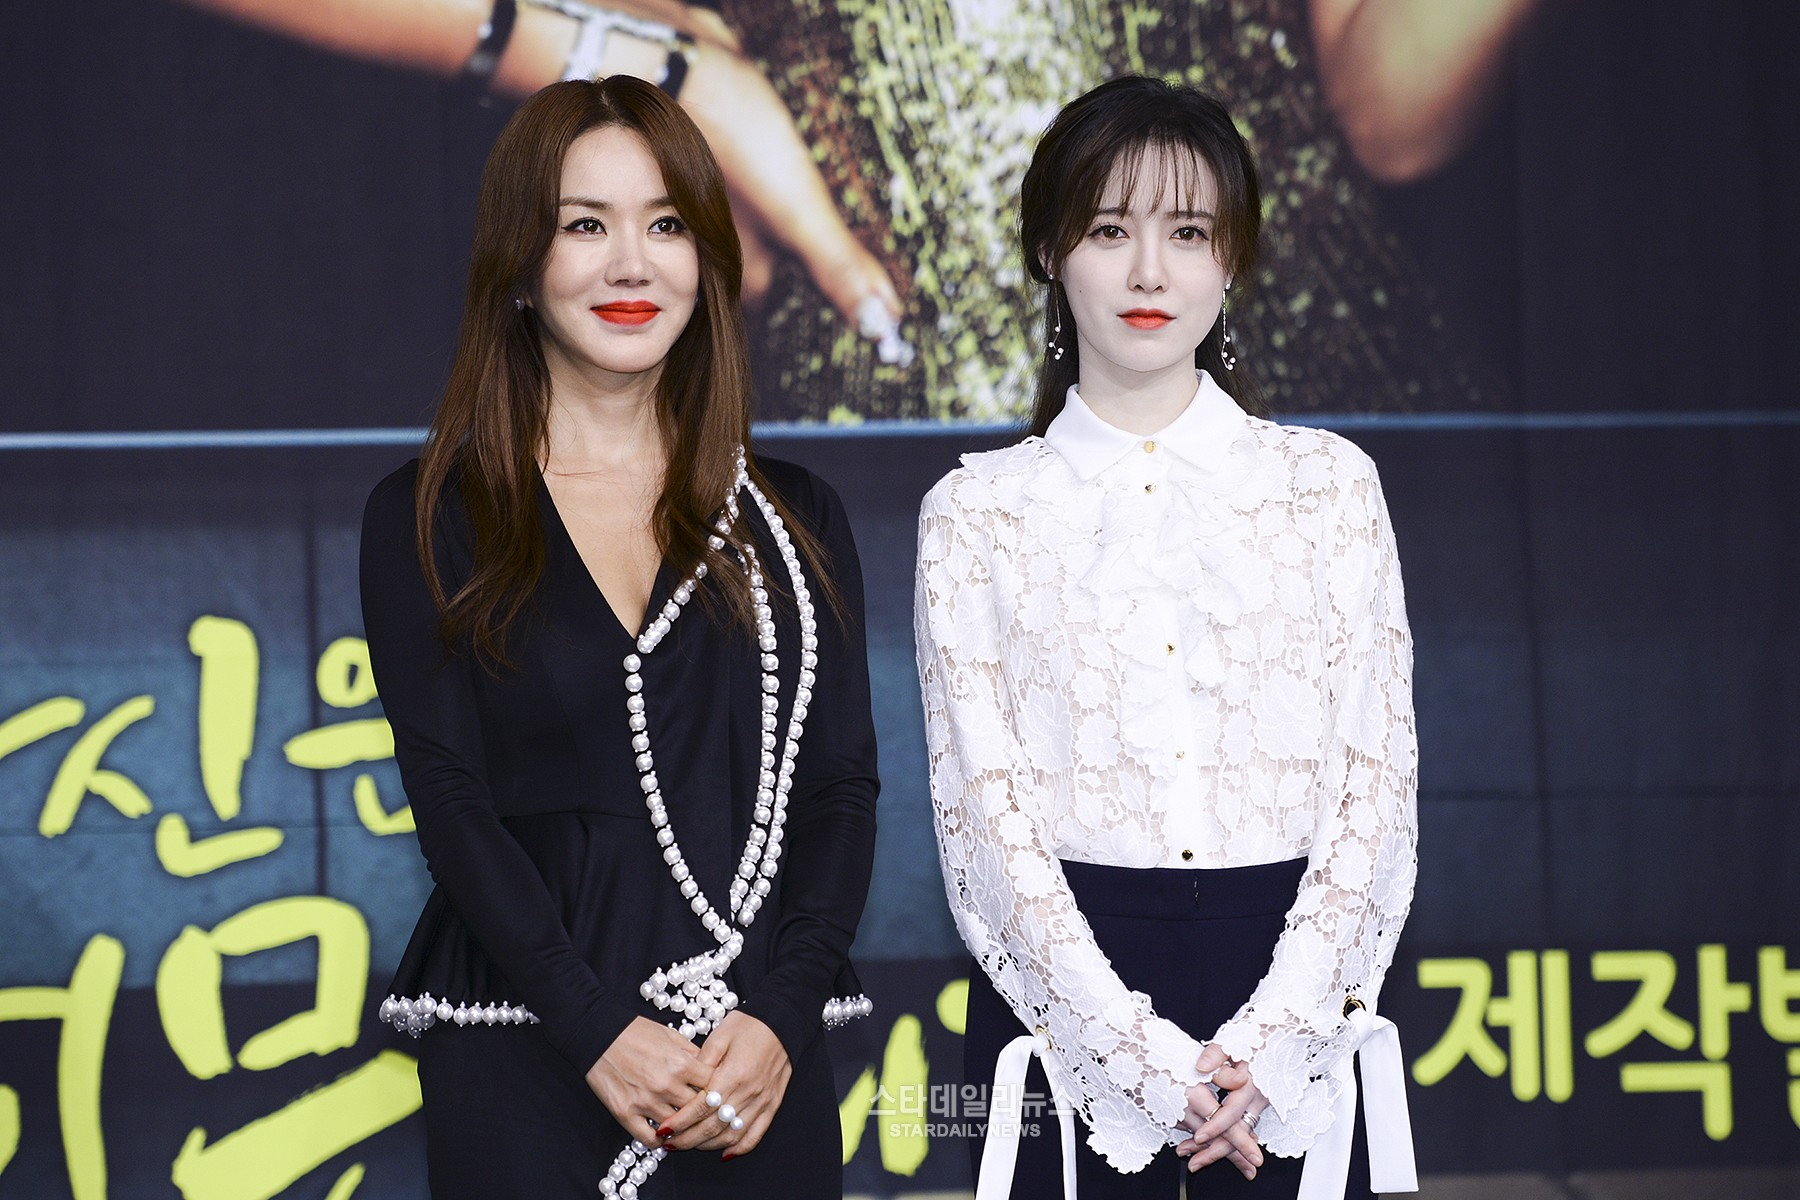 Ku Hye Sun And Uhm Jung Hwa Discuss Competition Between Actresses In Upcoming Drama